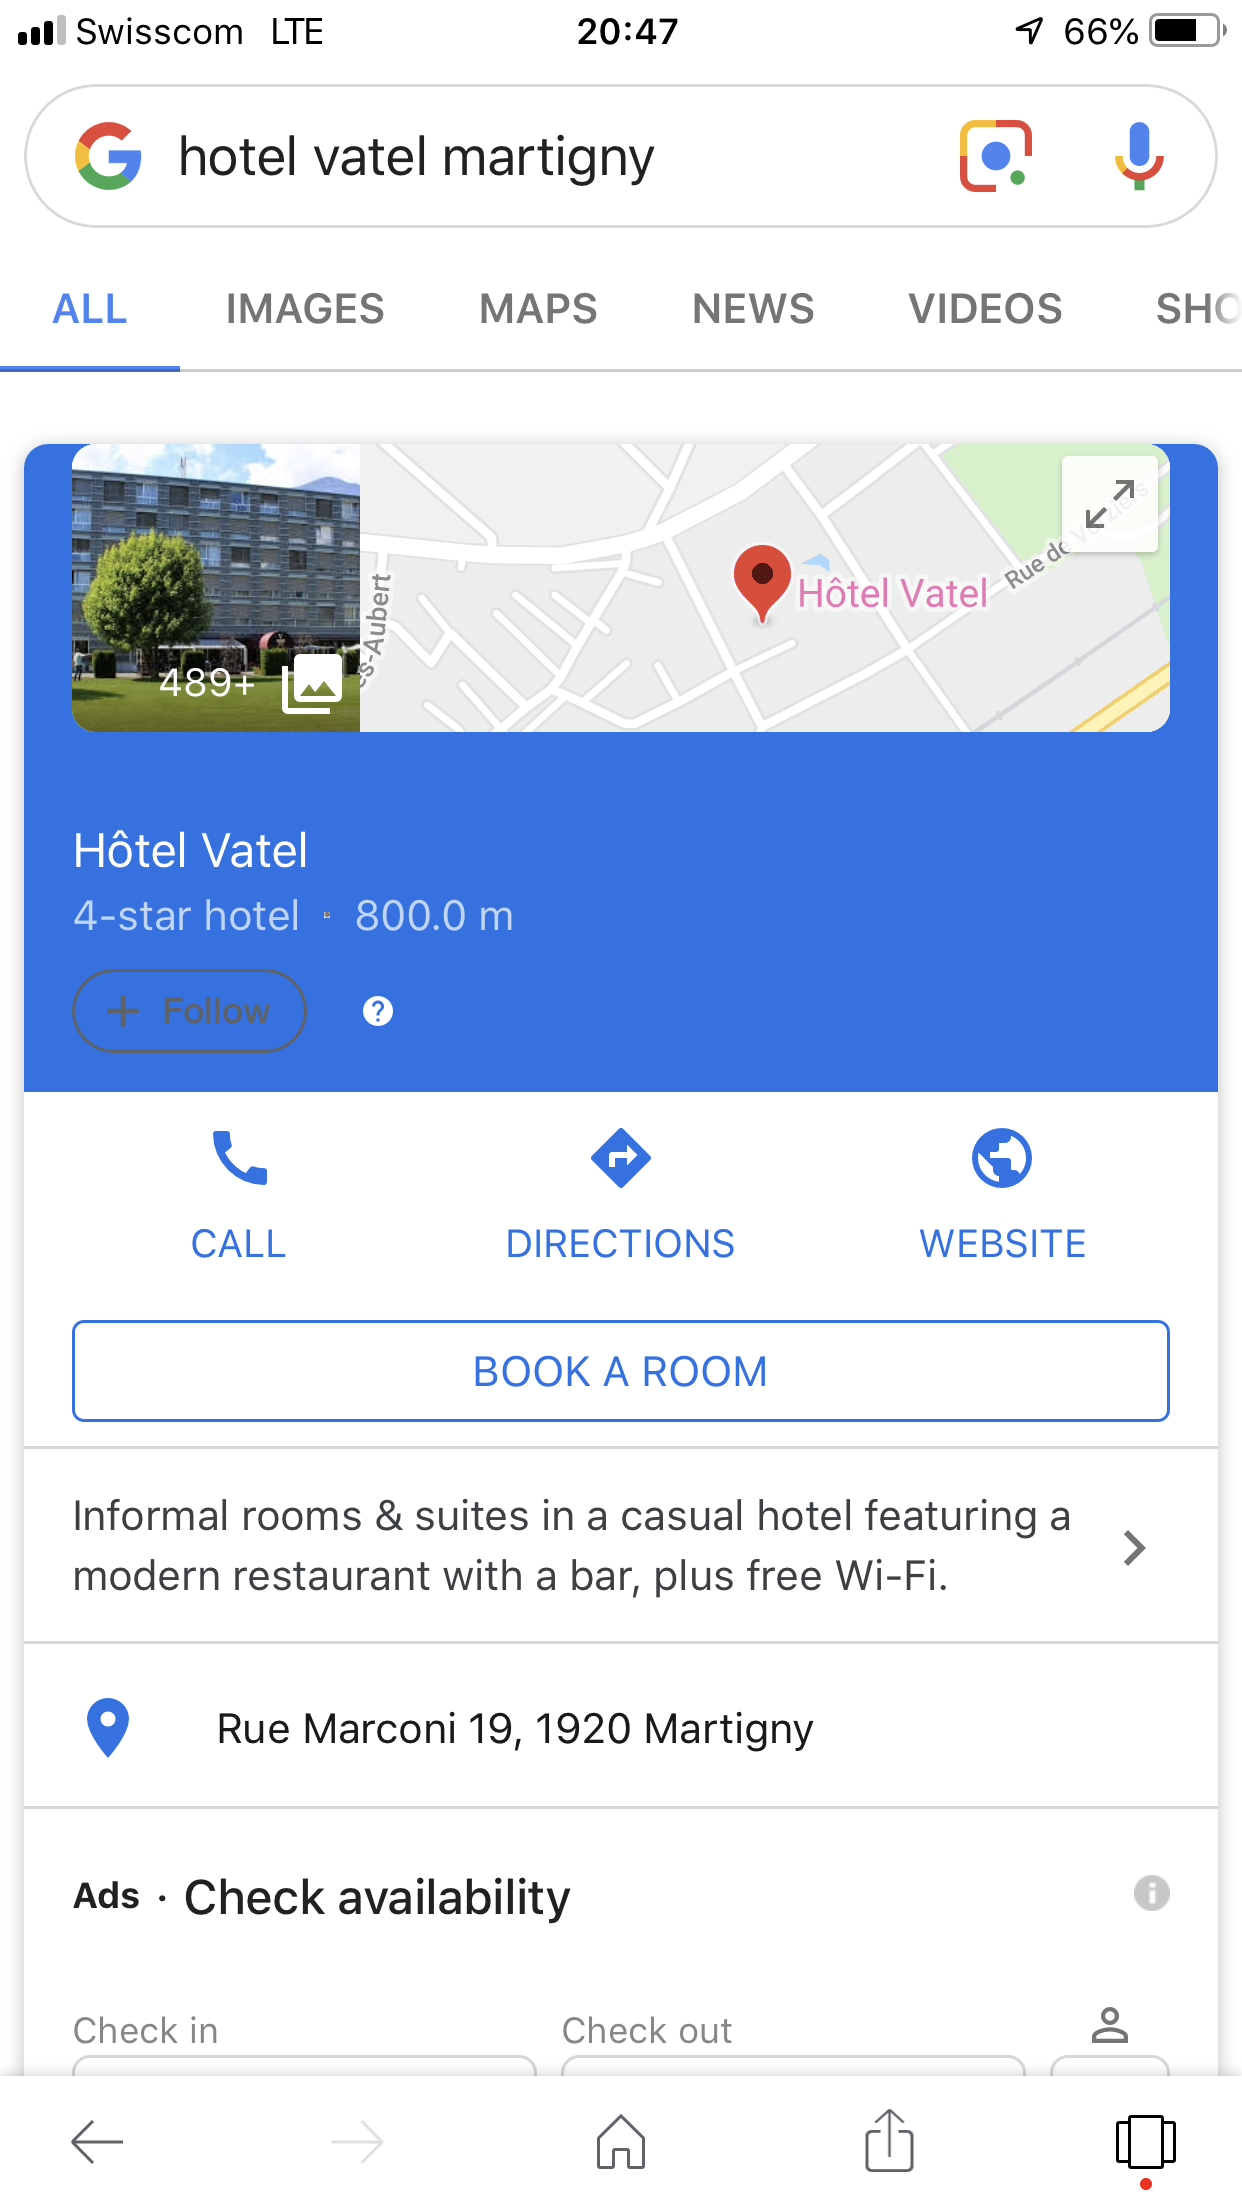 The map and address of Hotel Vatel